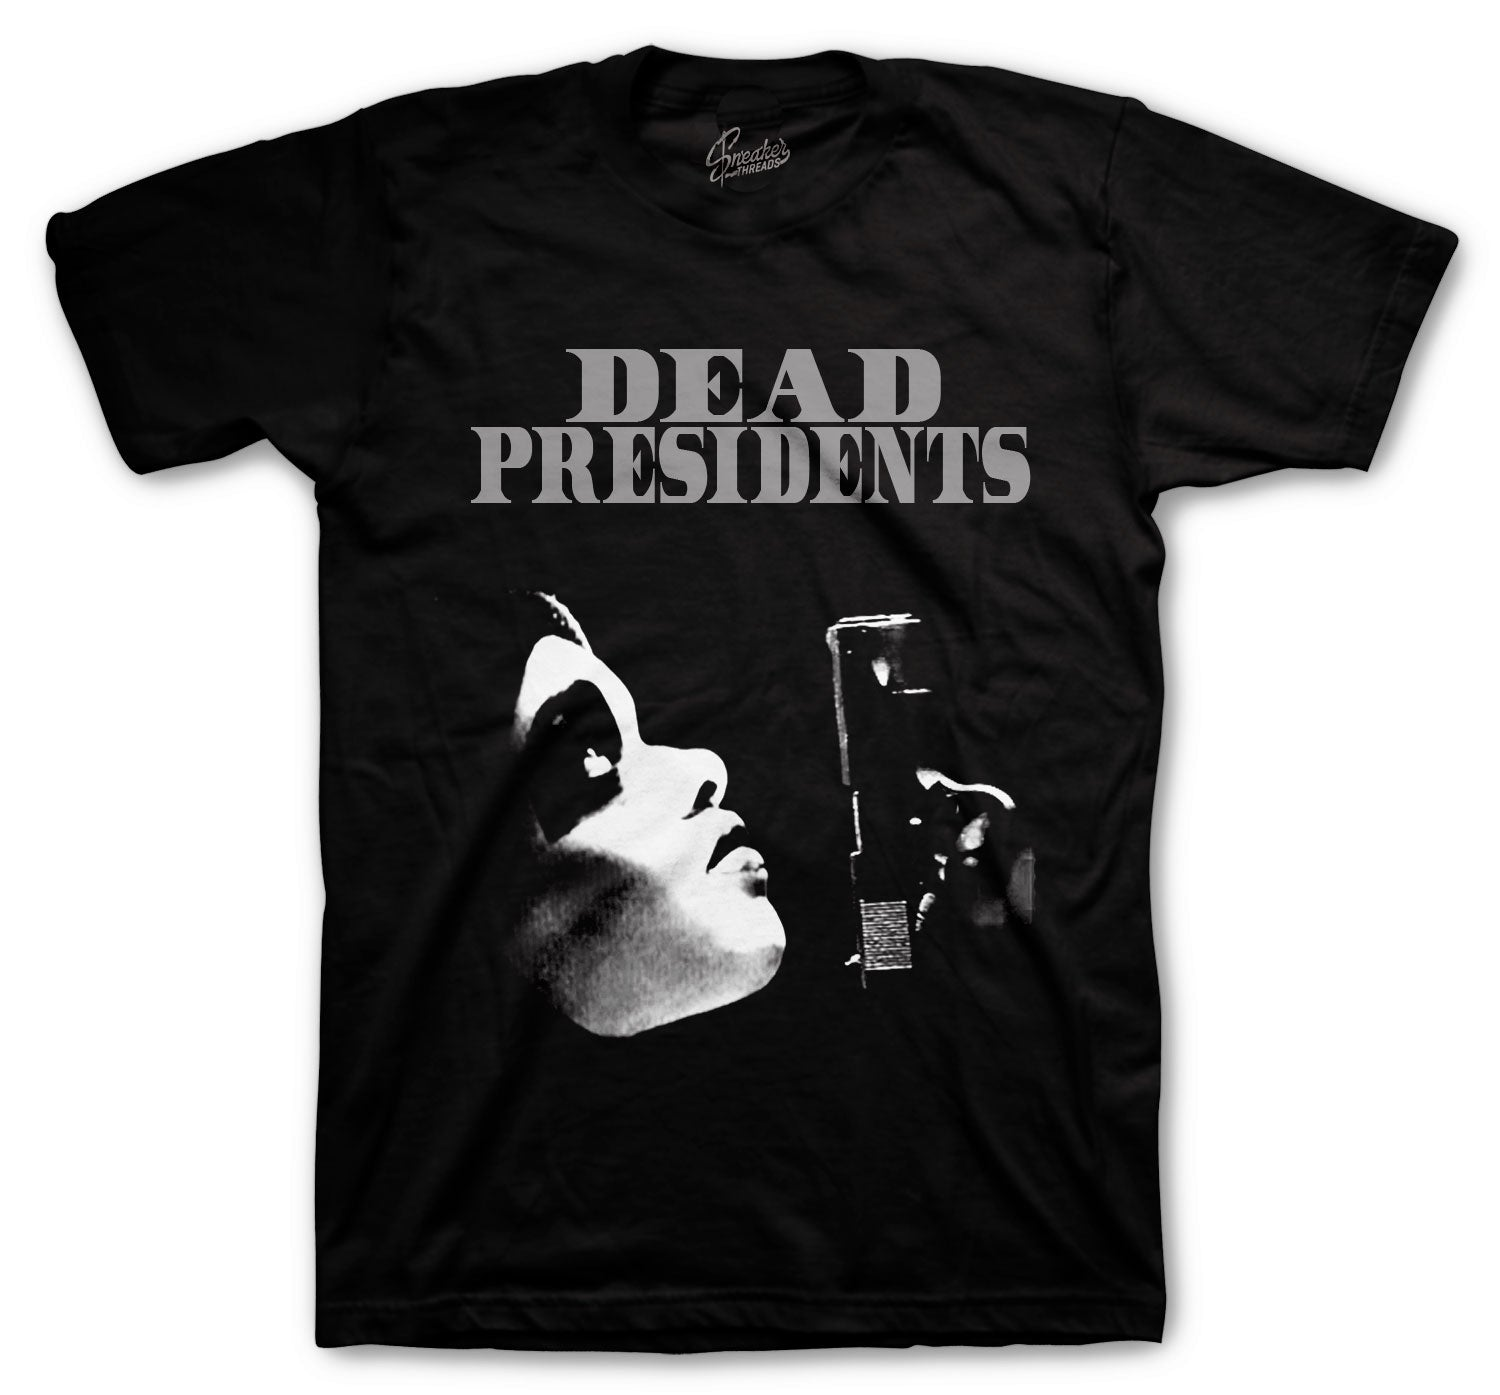 Foamposute Mini Swoosh Dead President freshest shirt for men